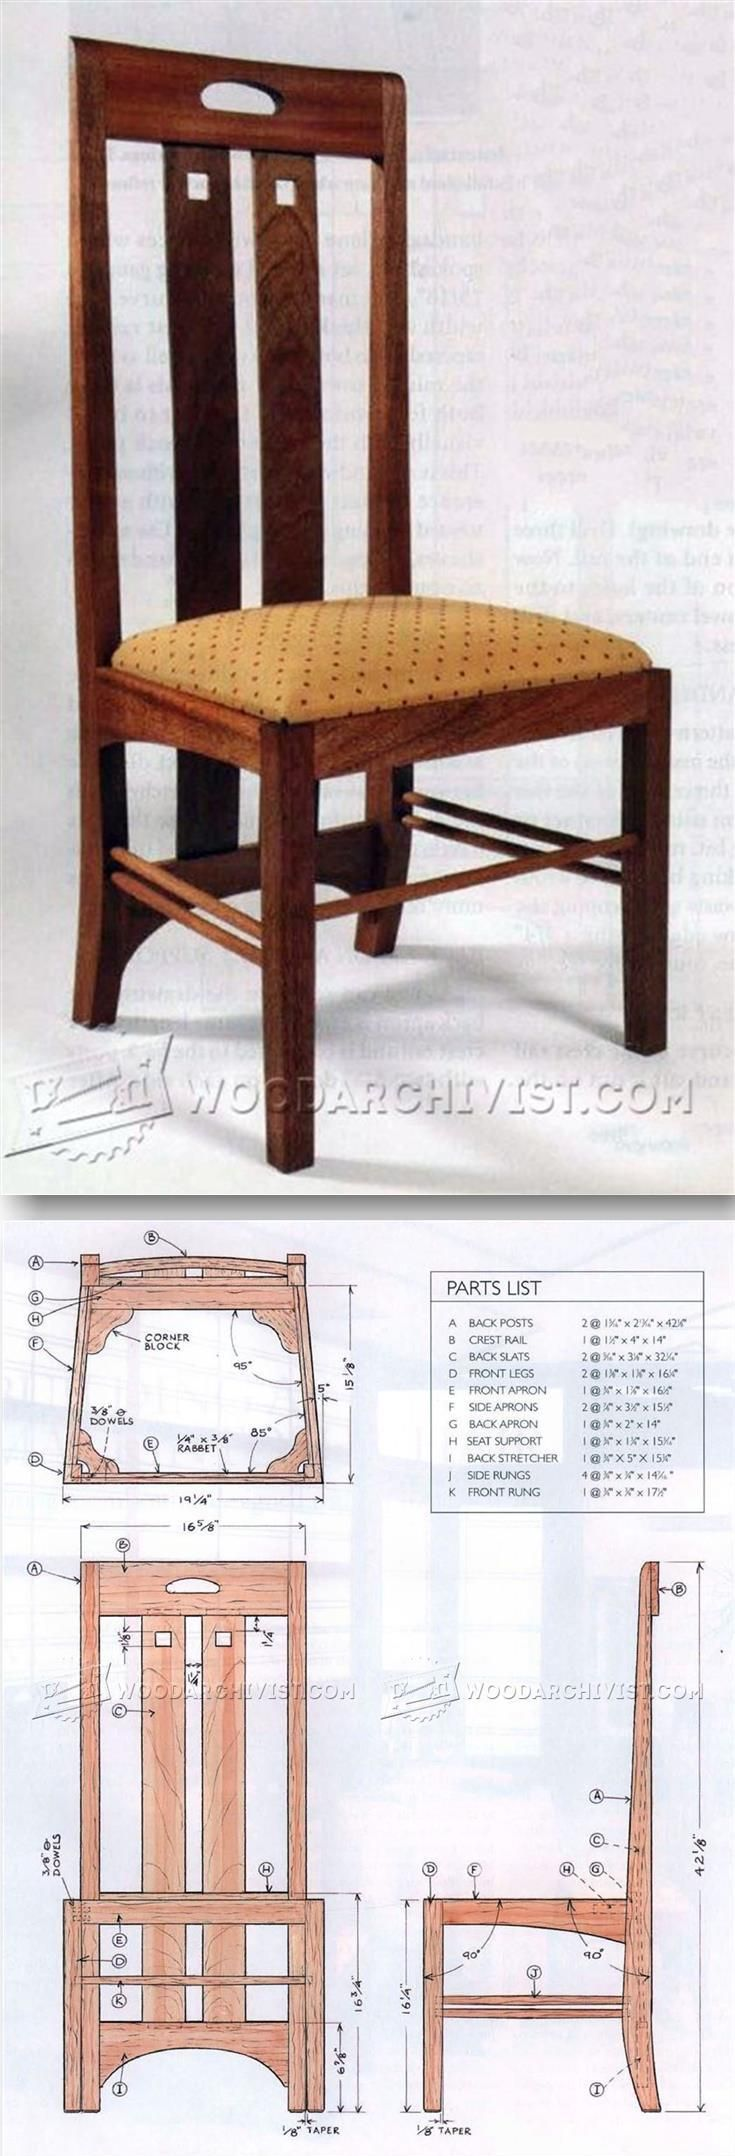 Morris chair plans outdoor - Mackintosh Chair Plans Furniture Plans And Projects Woodarchivist Com